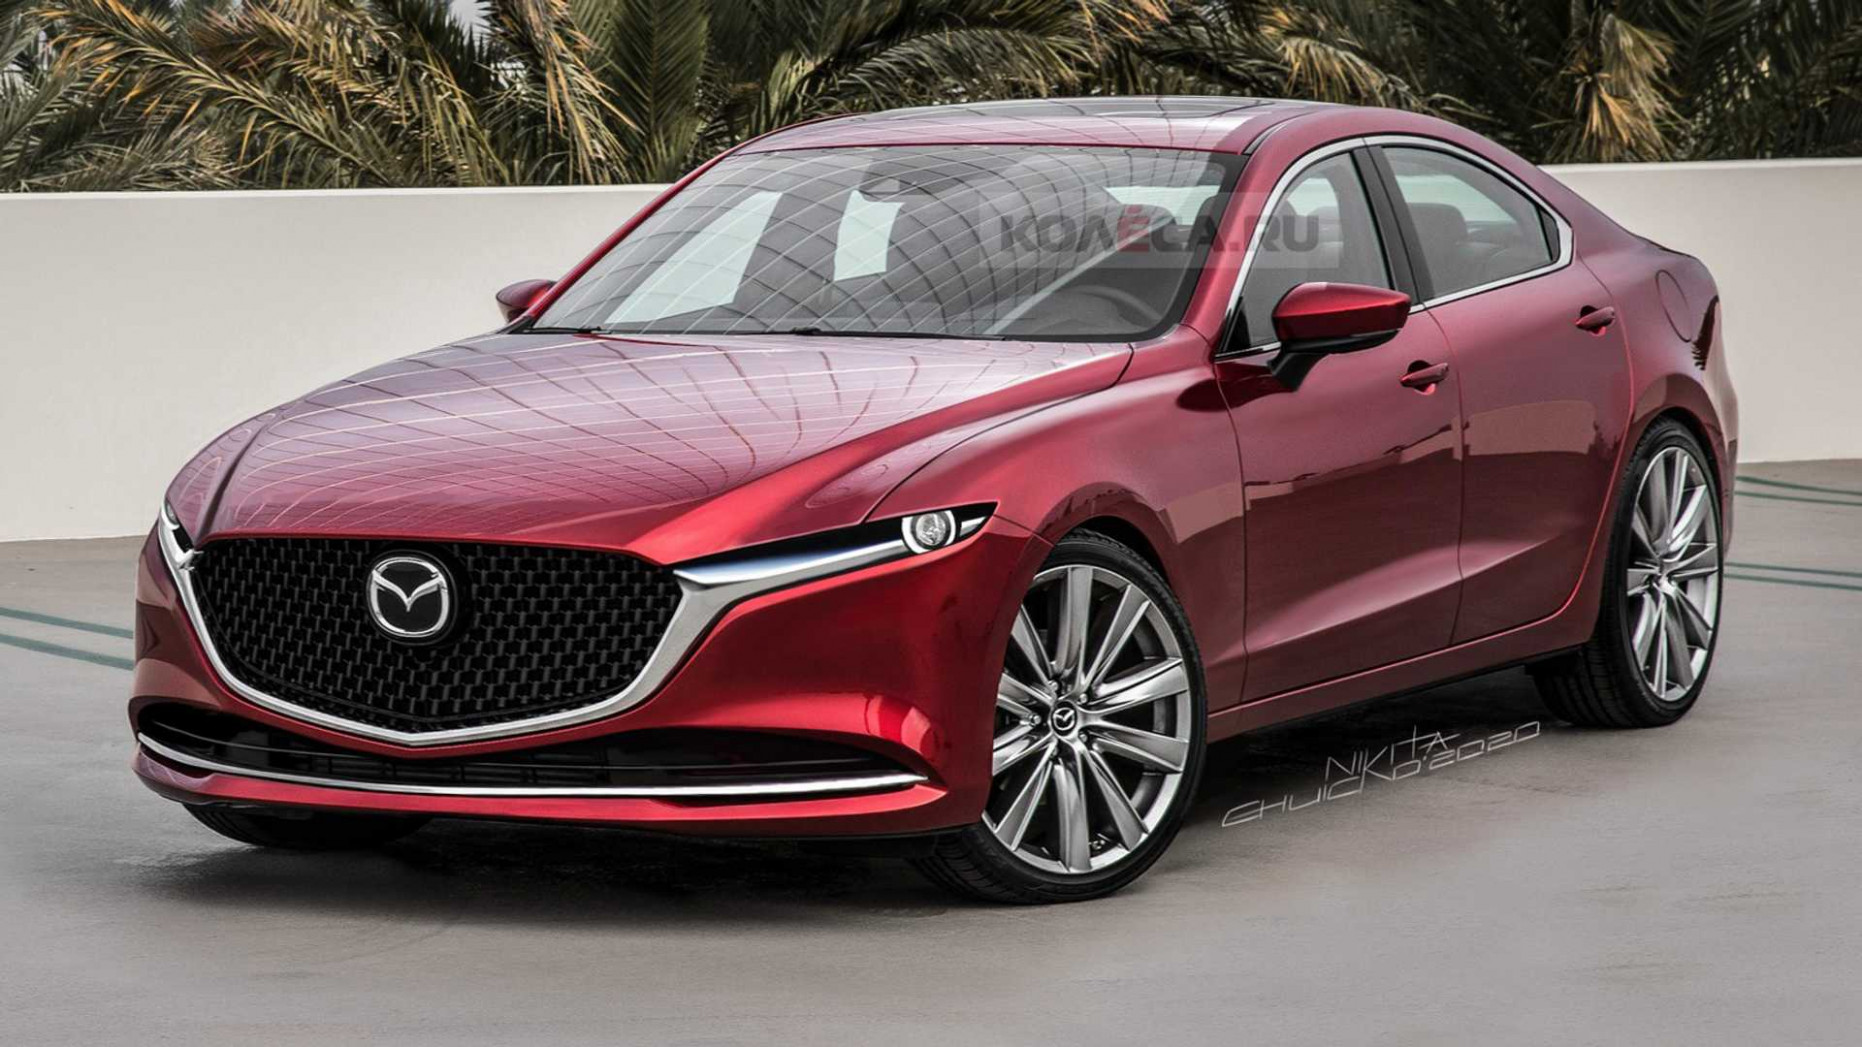 Interior When Is The 2022 Mazda 6 Coming Out